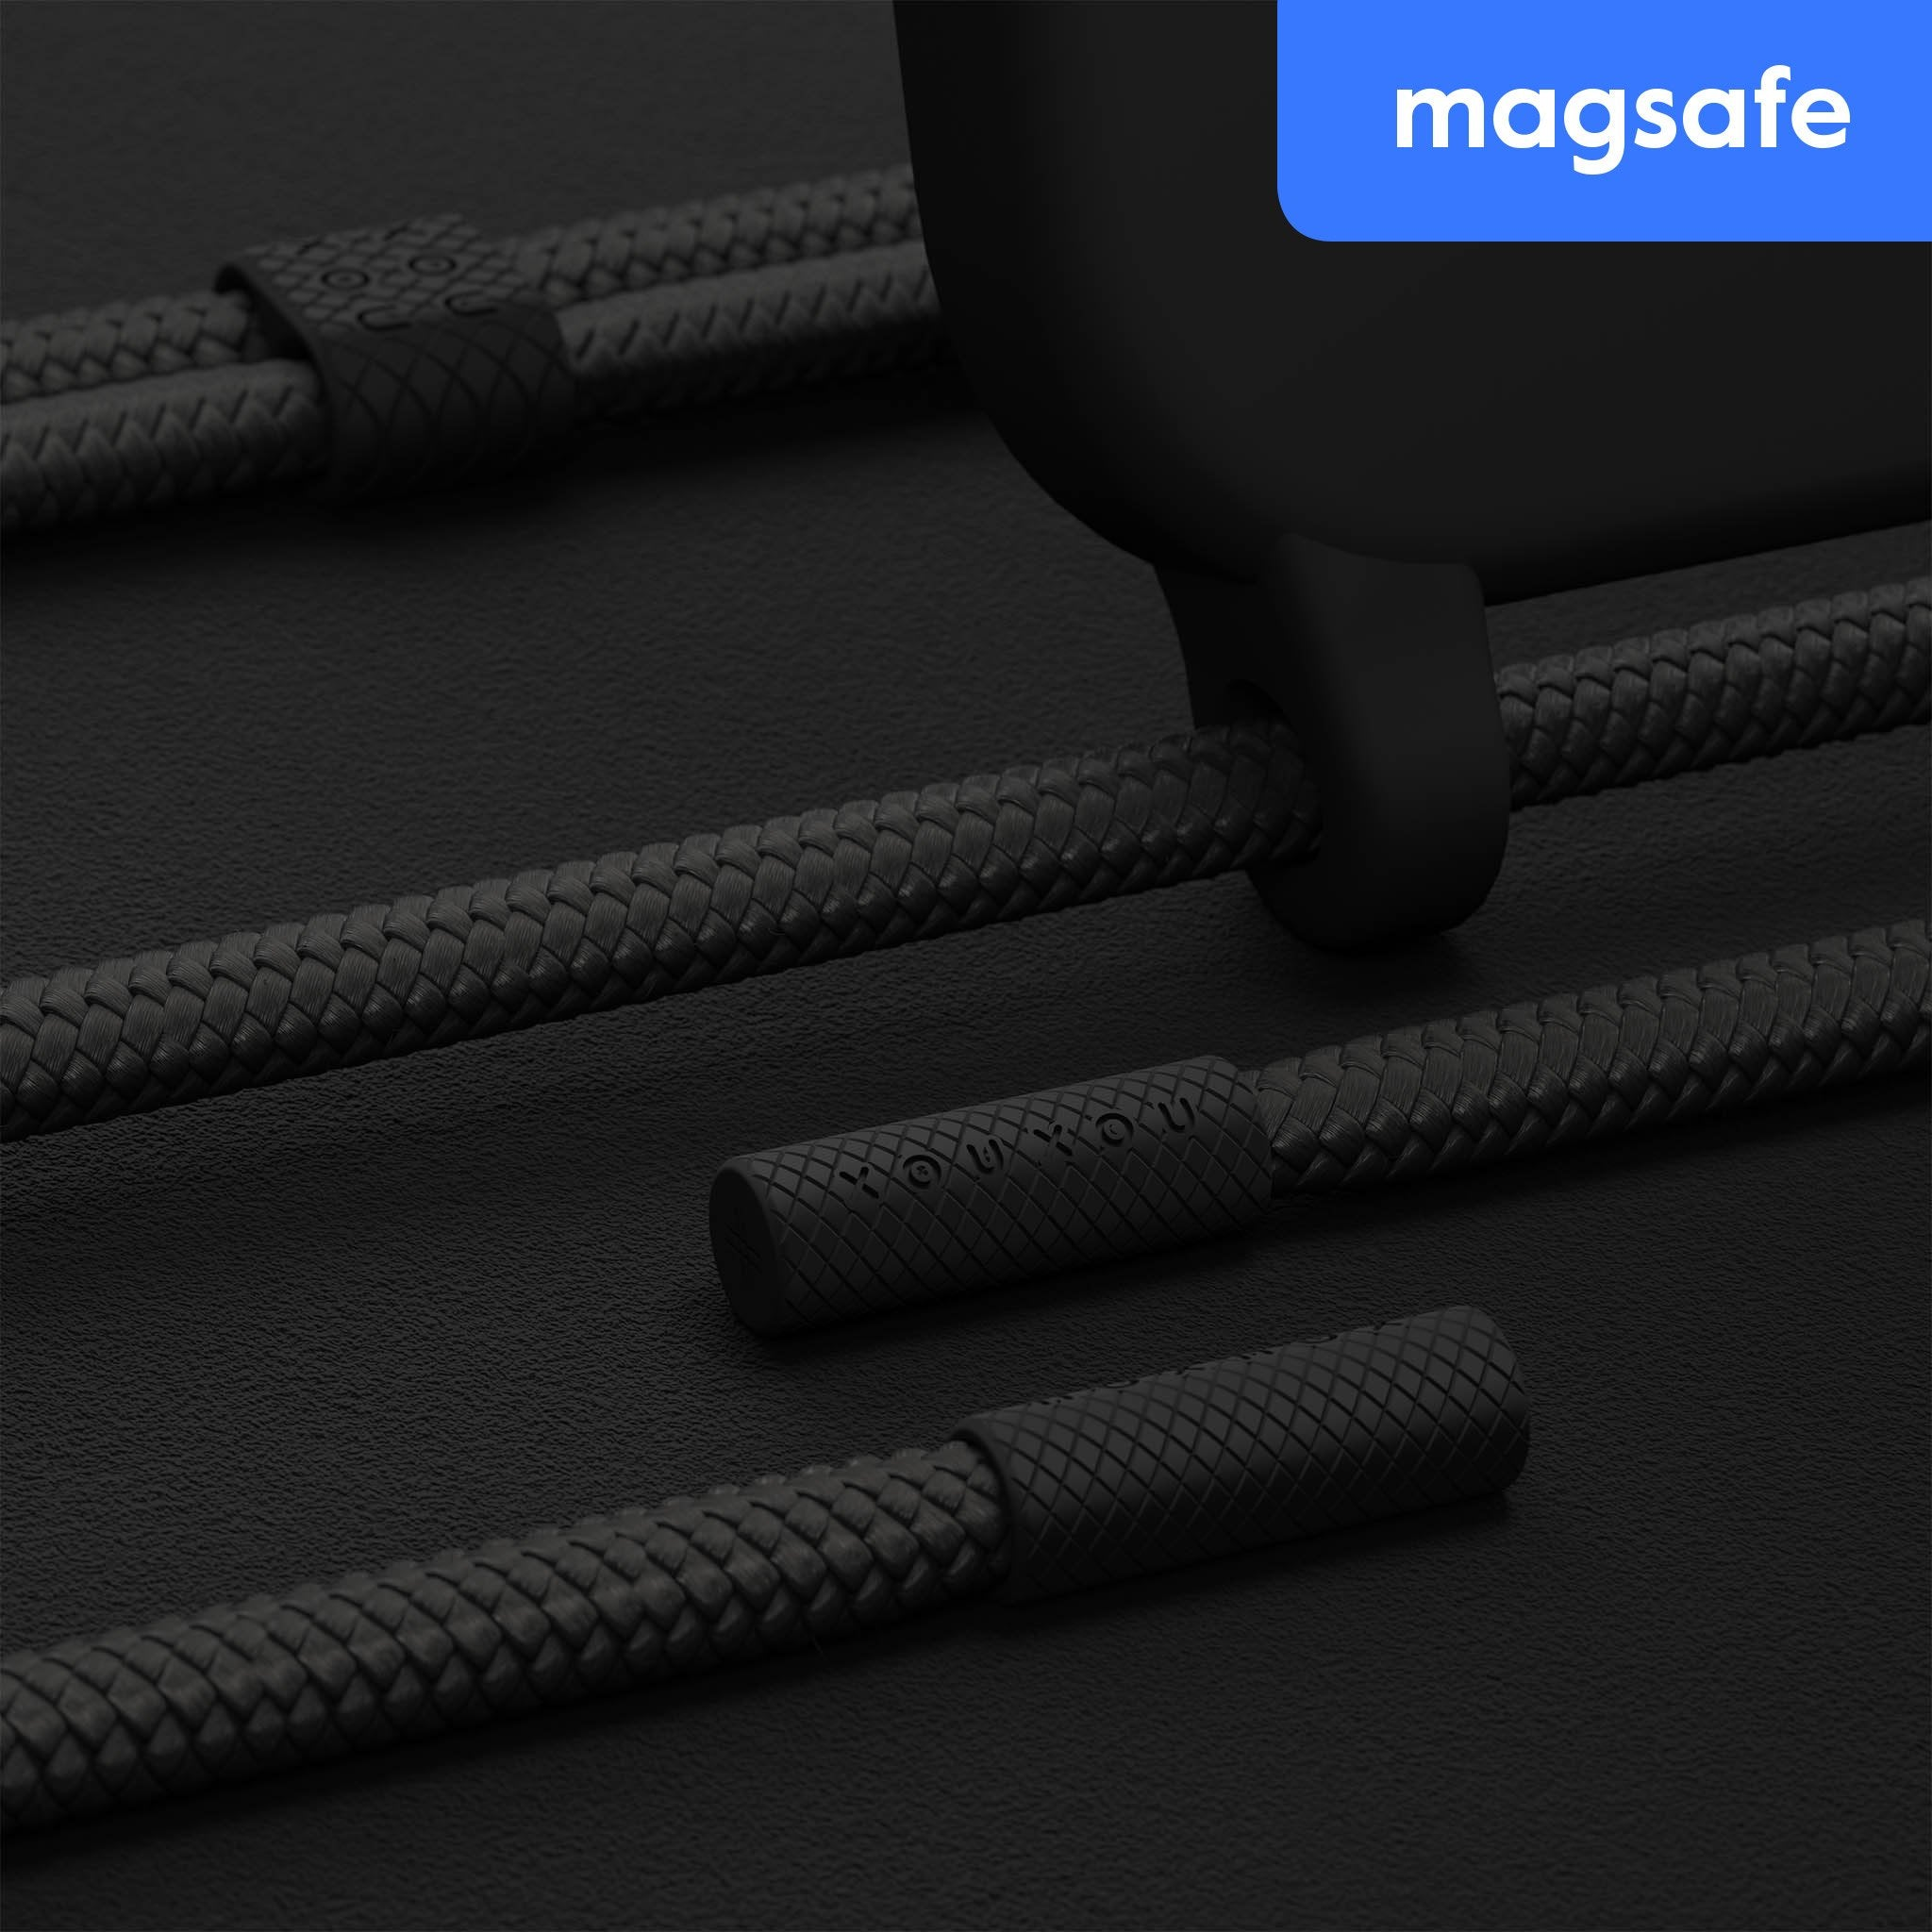 Black Silicone Case with MagSafe + Rope